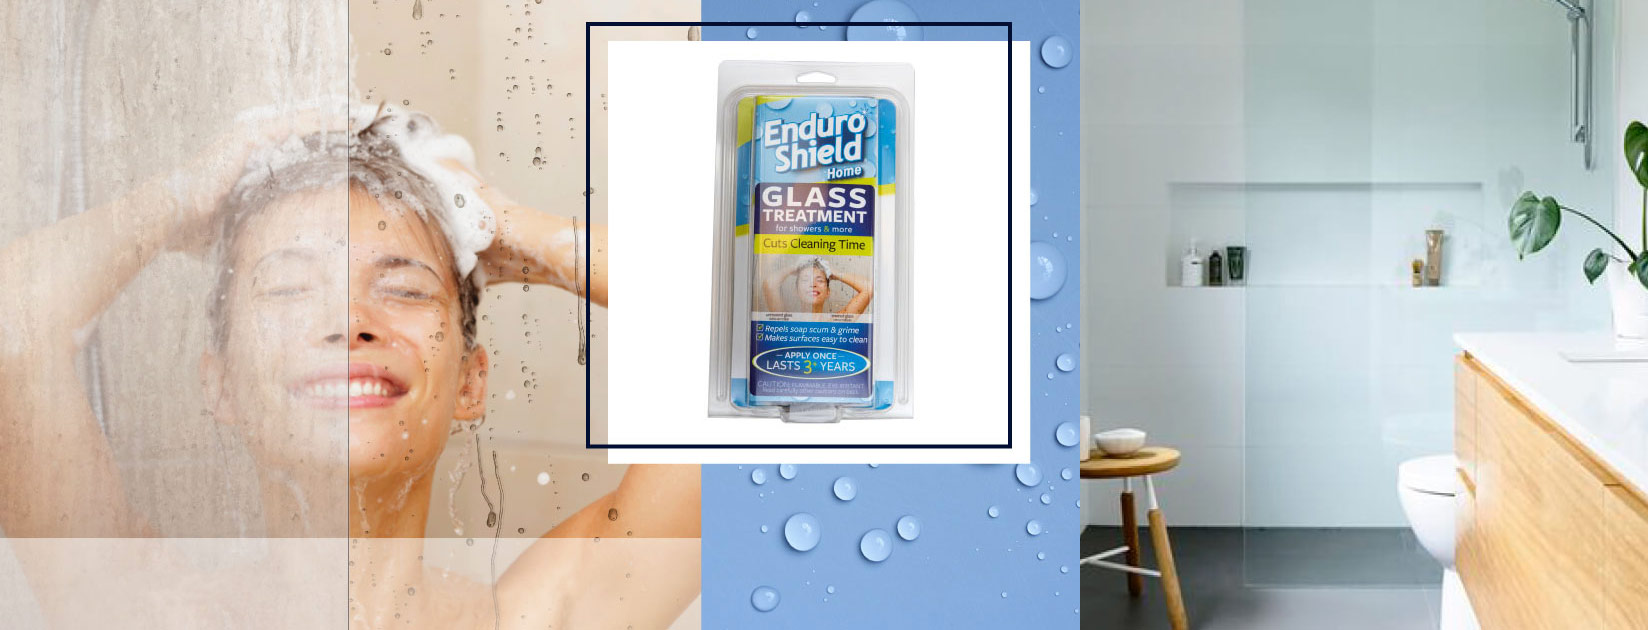 EnduroShield Shower Glass, Tile and Grout Treatment